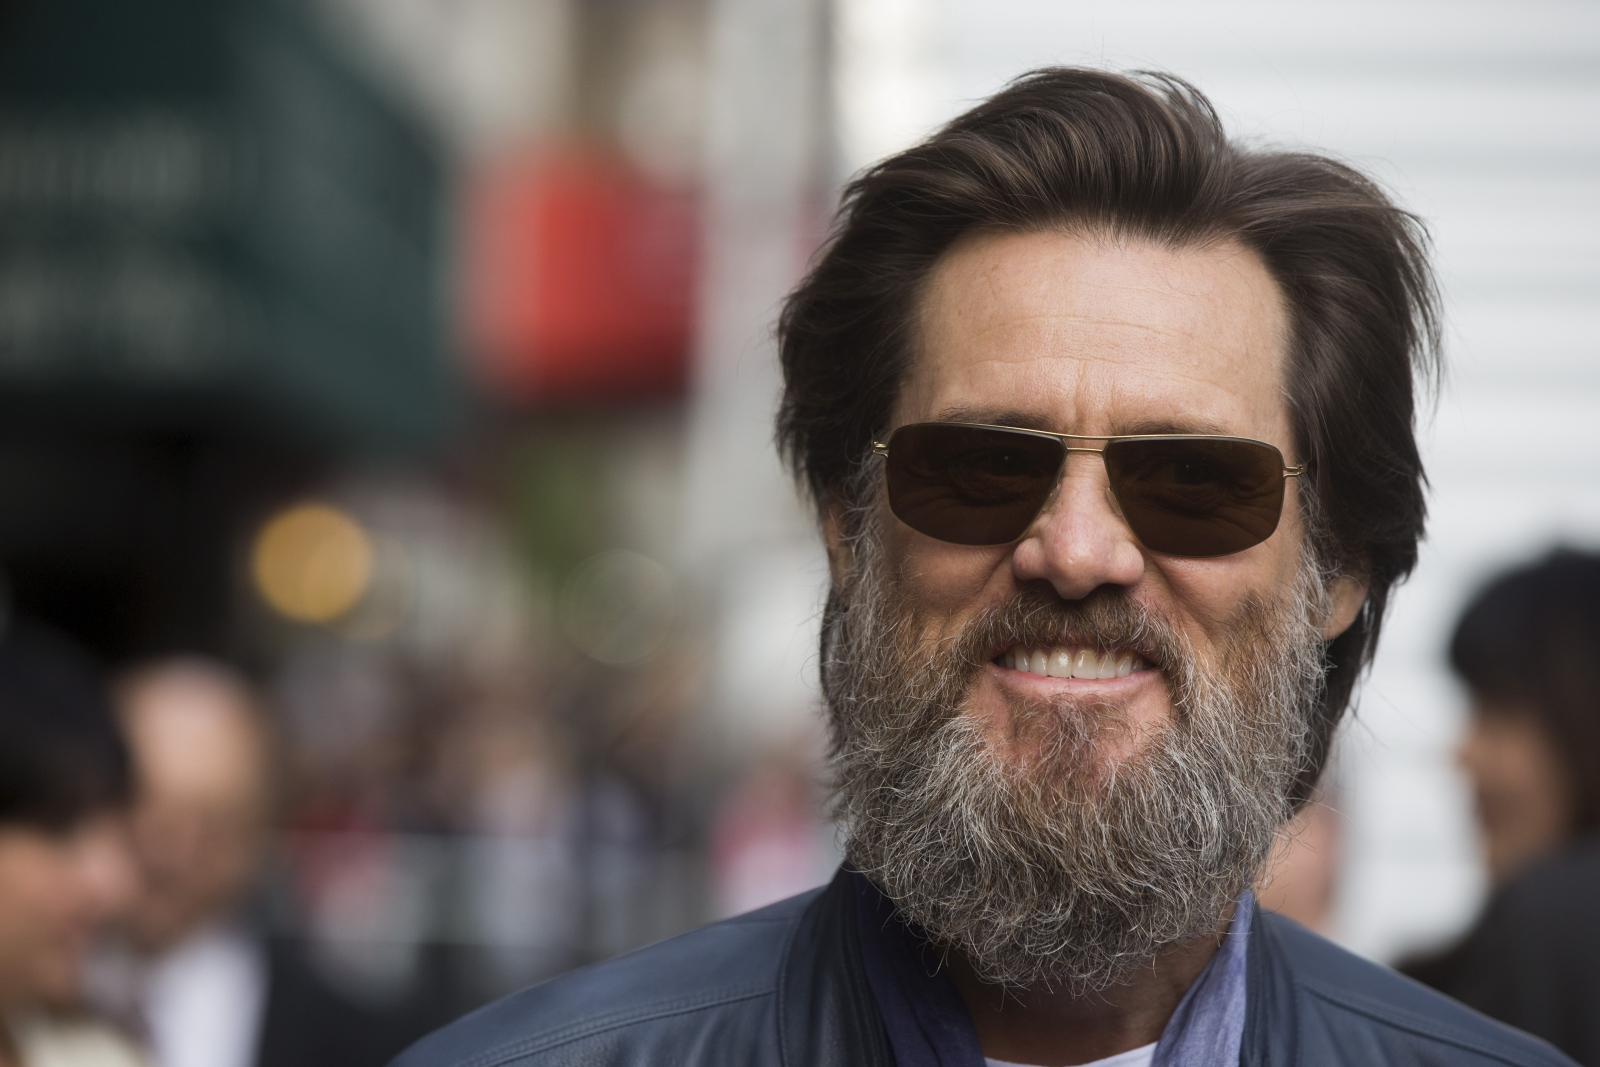 Jim Carrey fans are wo... Jim Carrey